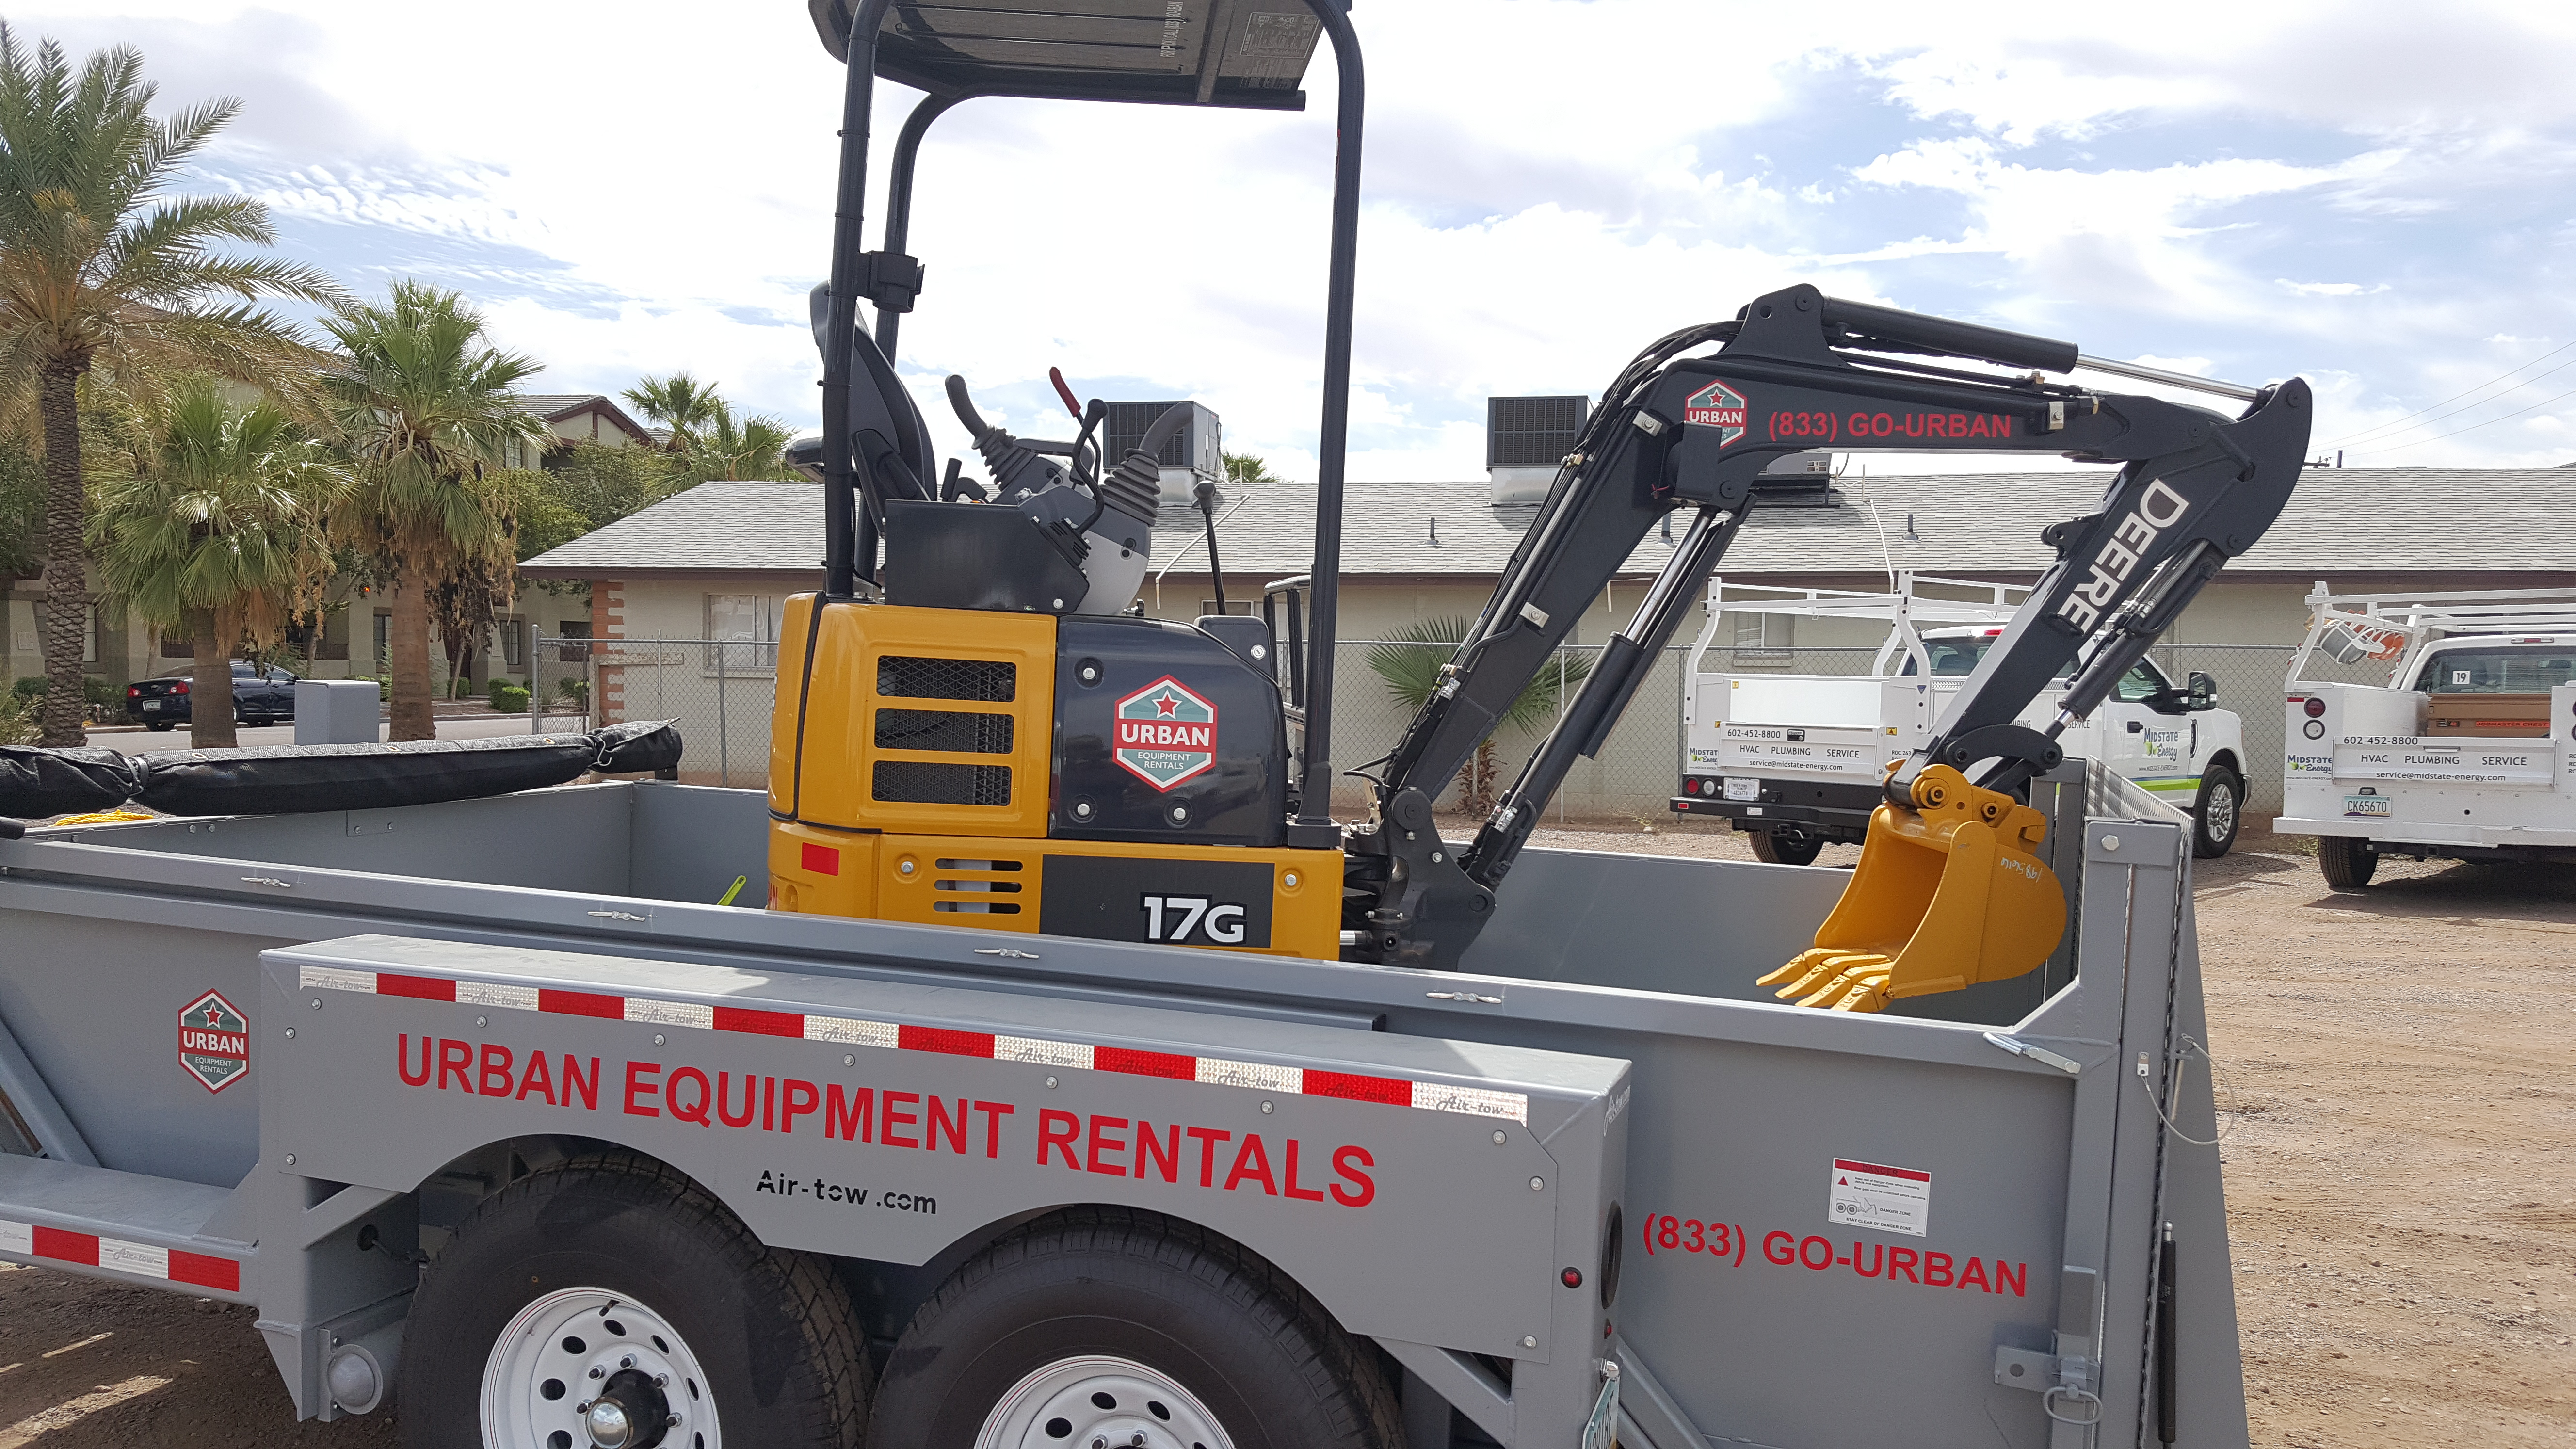 Urban Equipment Rentals John Deere 17G Excavator Mini Excavator